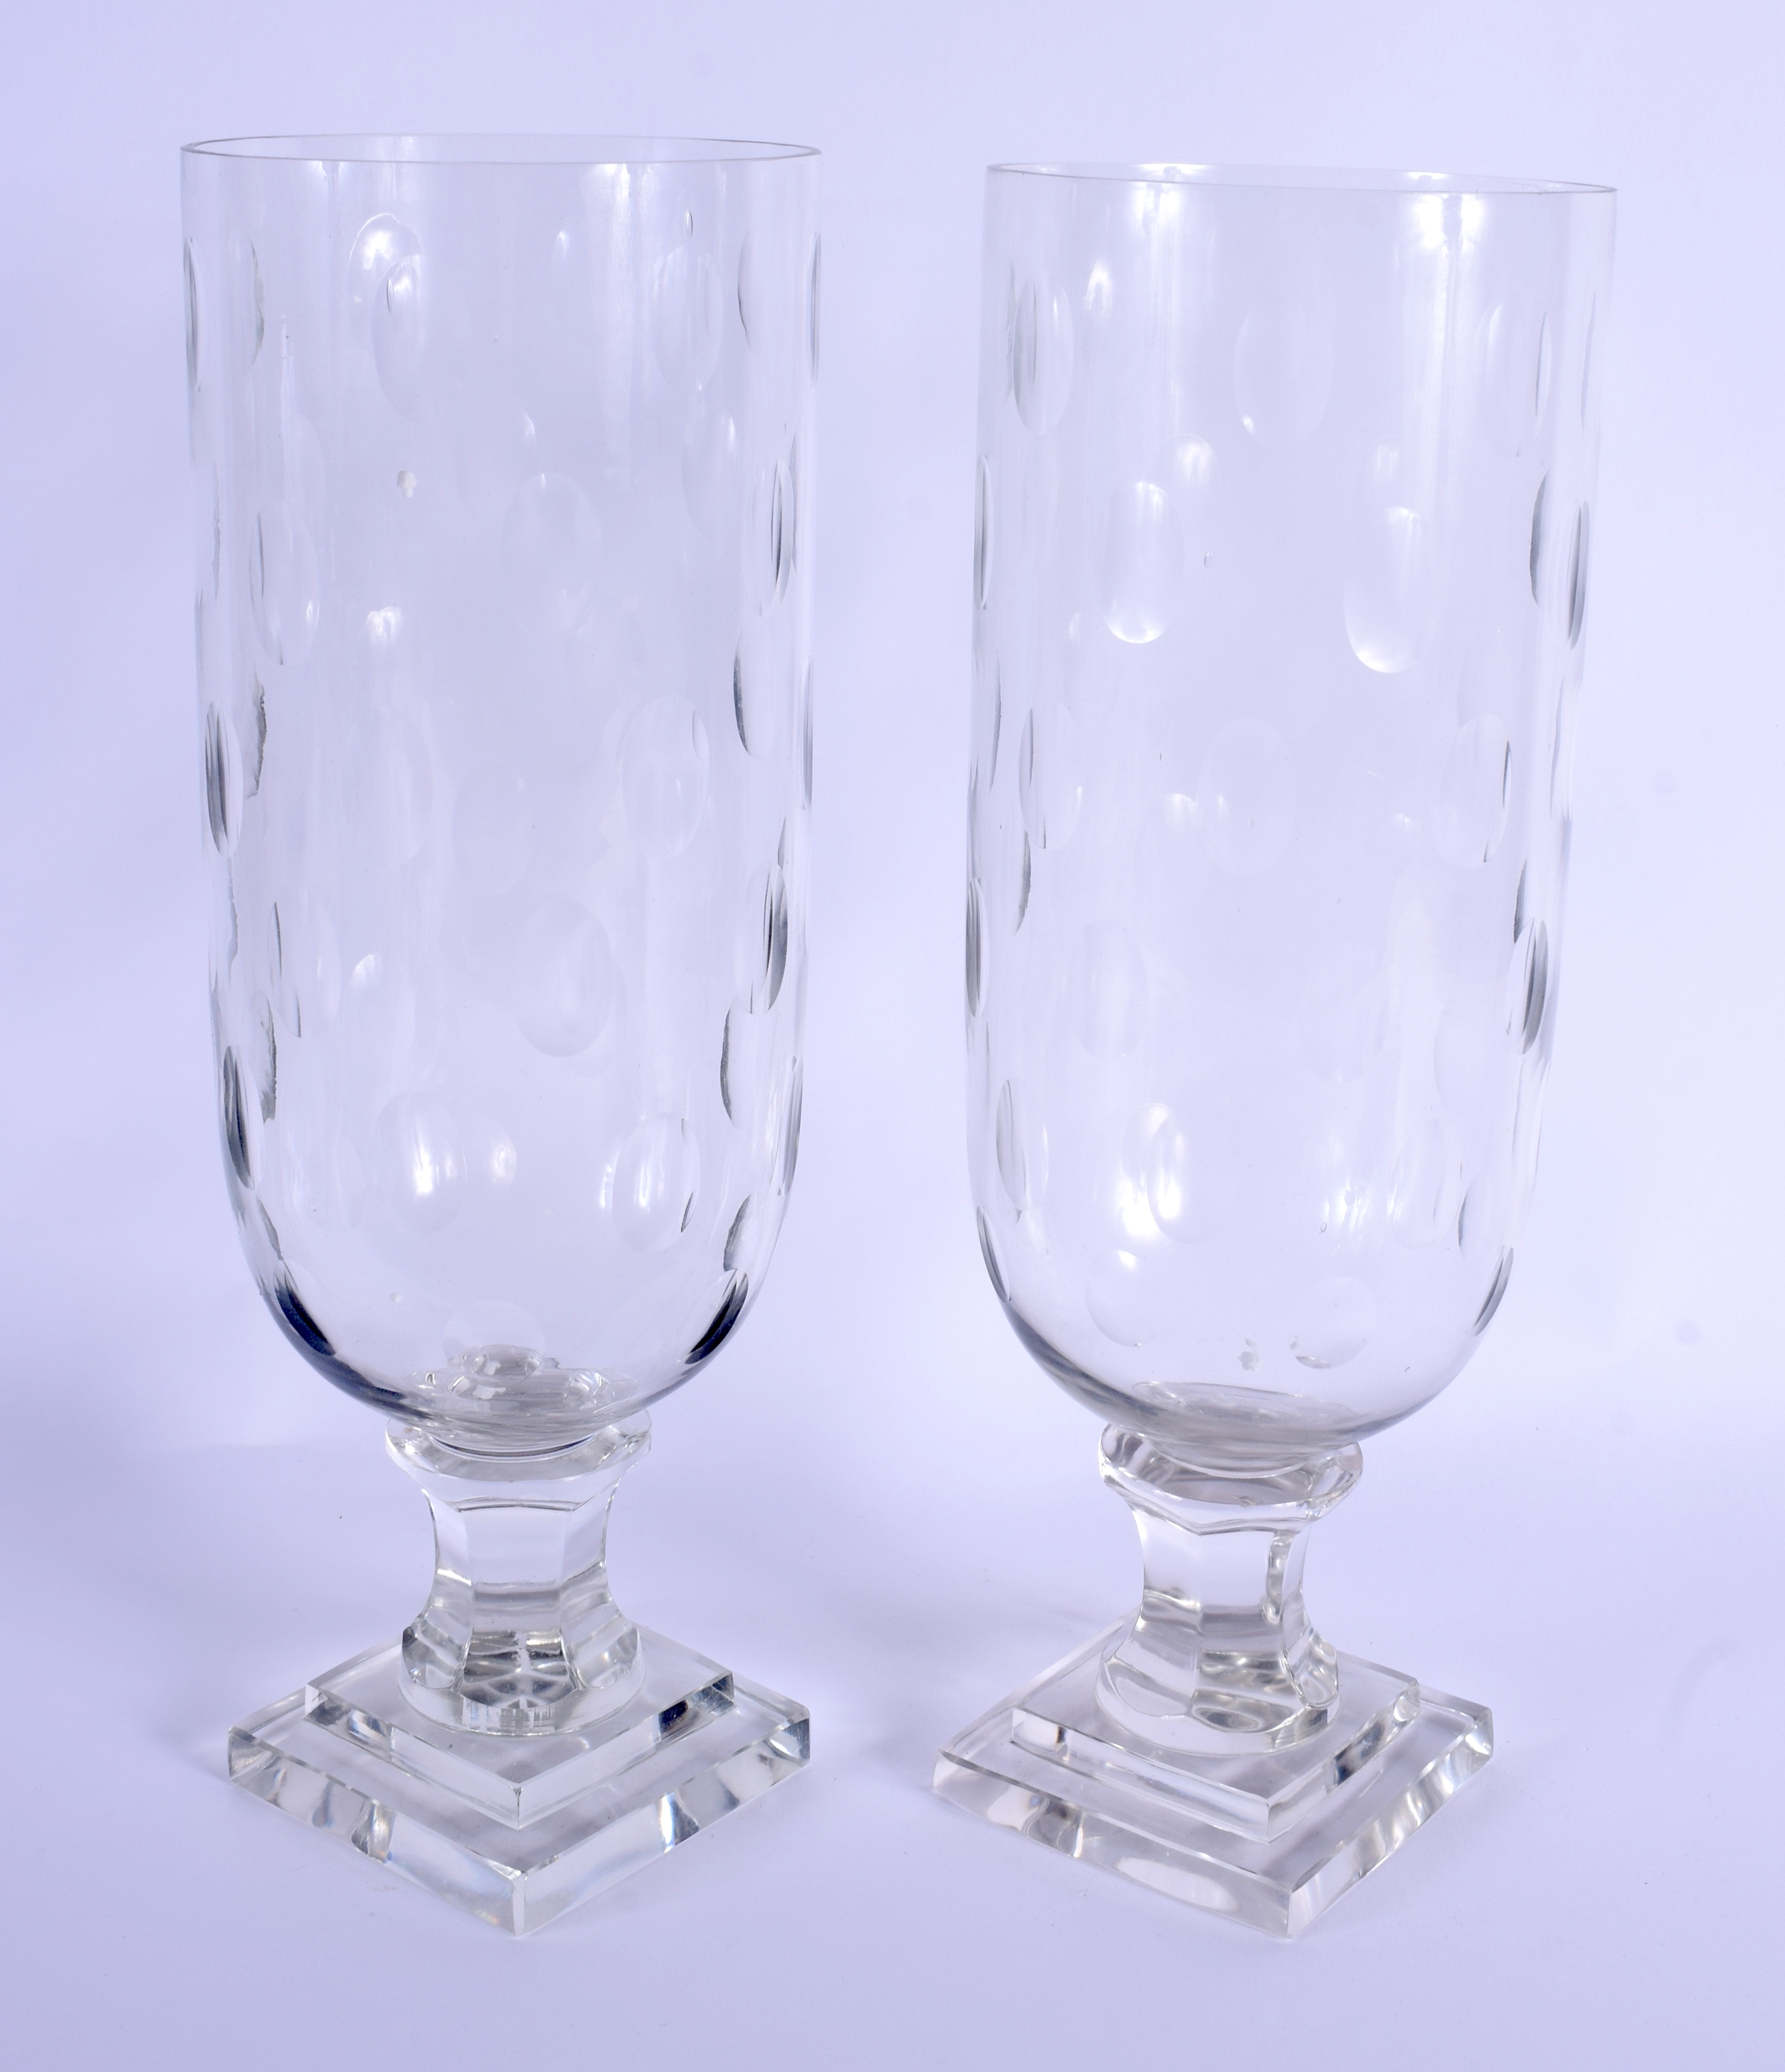 A PAIR OF EUROPEAN CELERY STORM STYLE GLASS VASES. 34 cm high. - Image 2 of 2